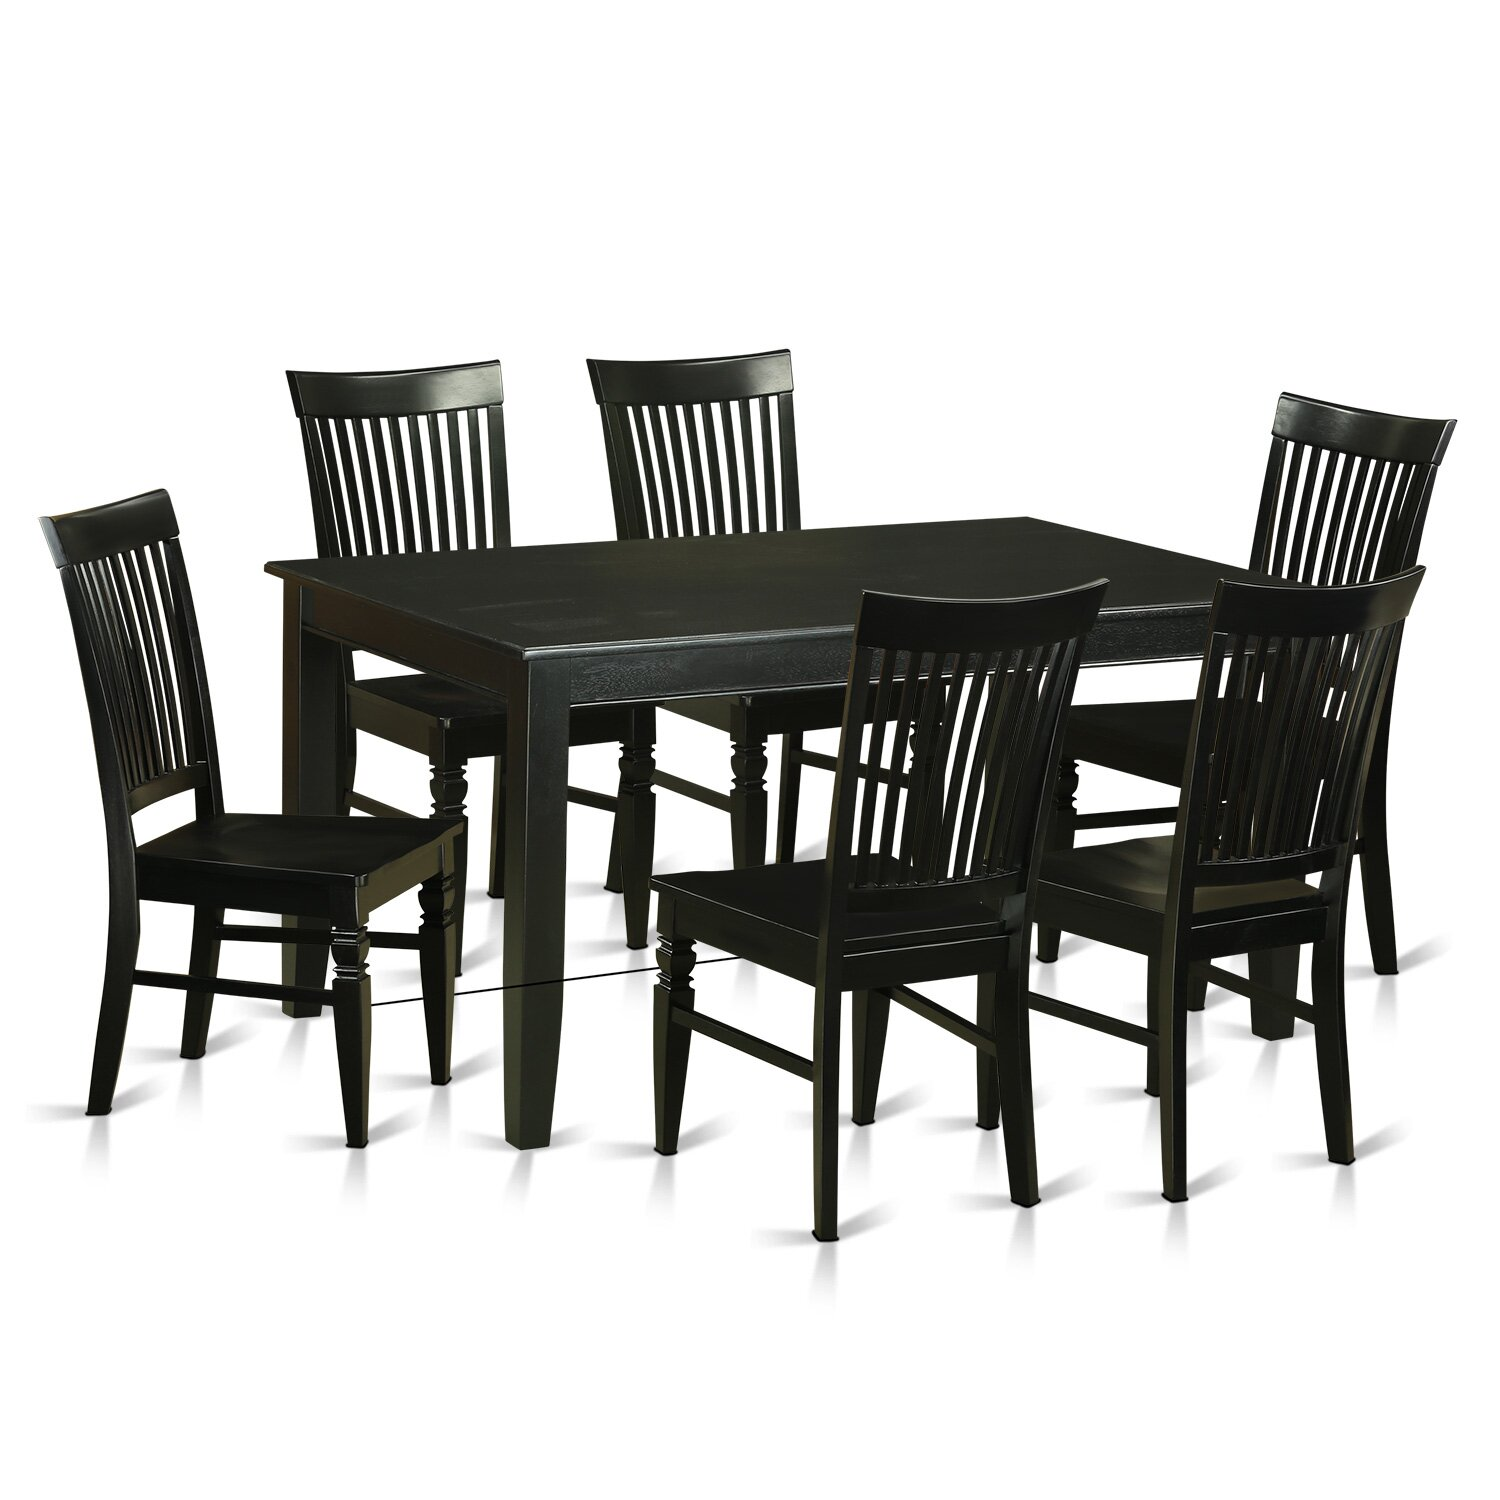 East west dudley 7 piece dining set wayfair for Kitchen table set 7 piece